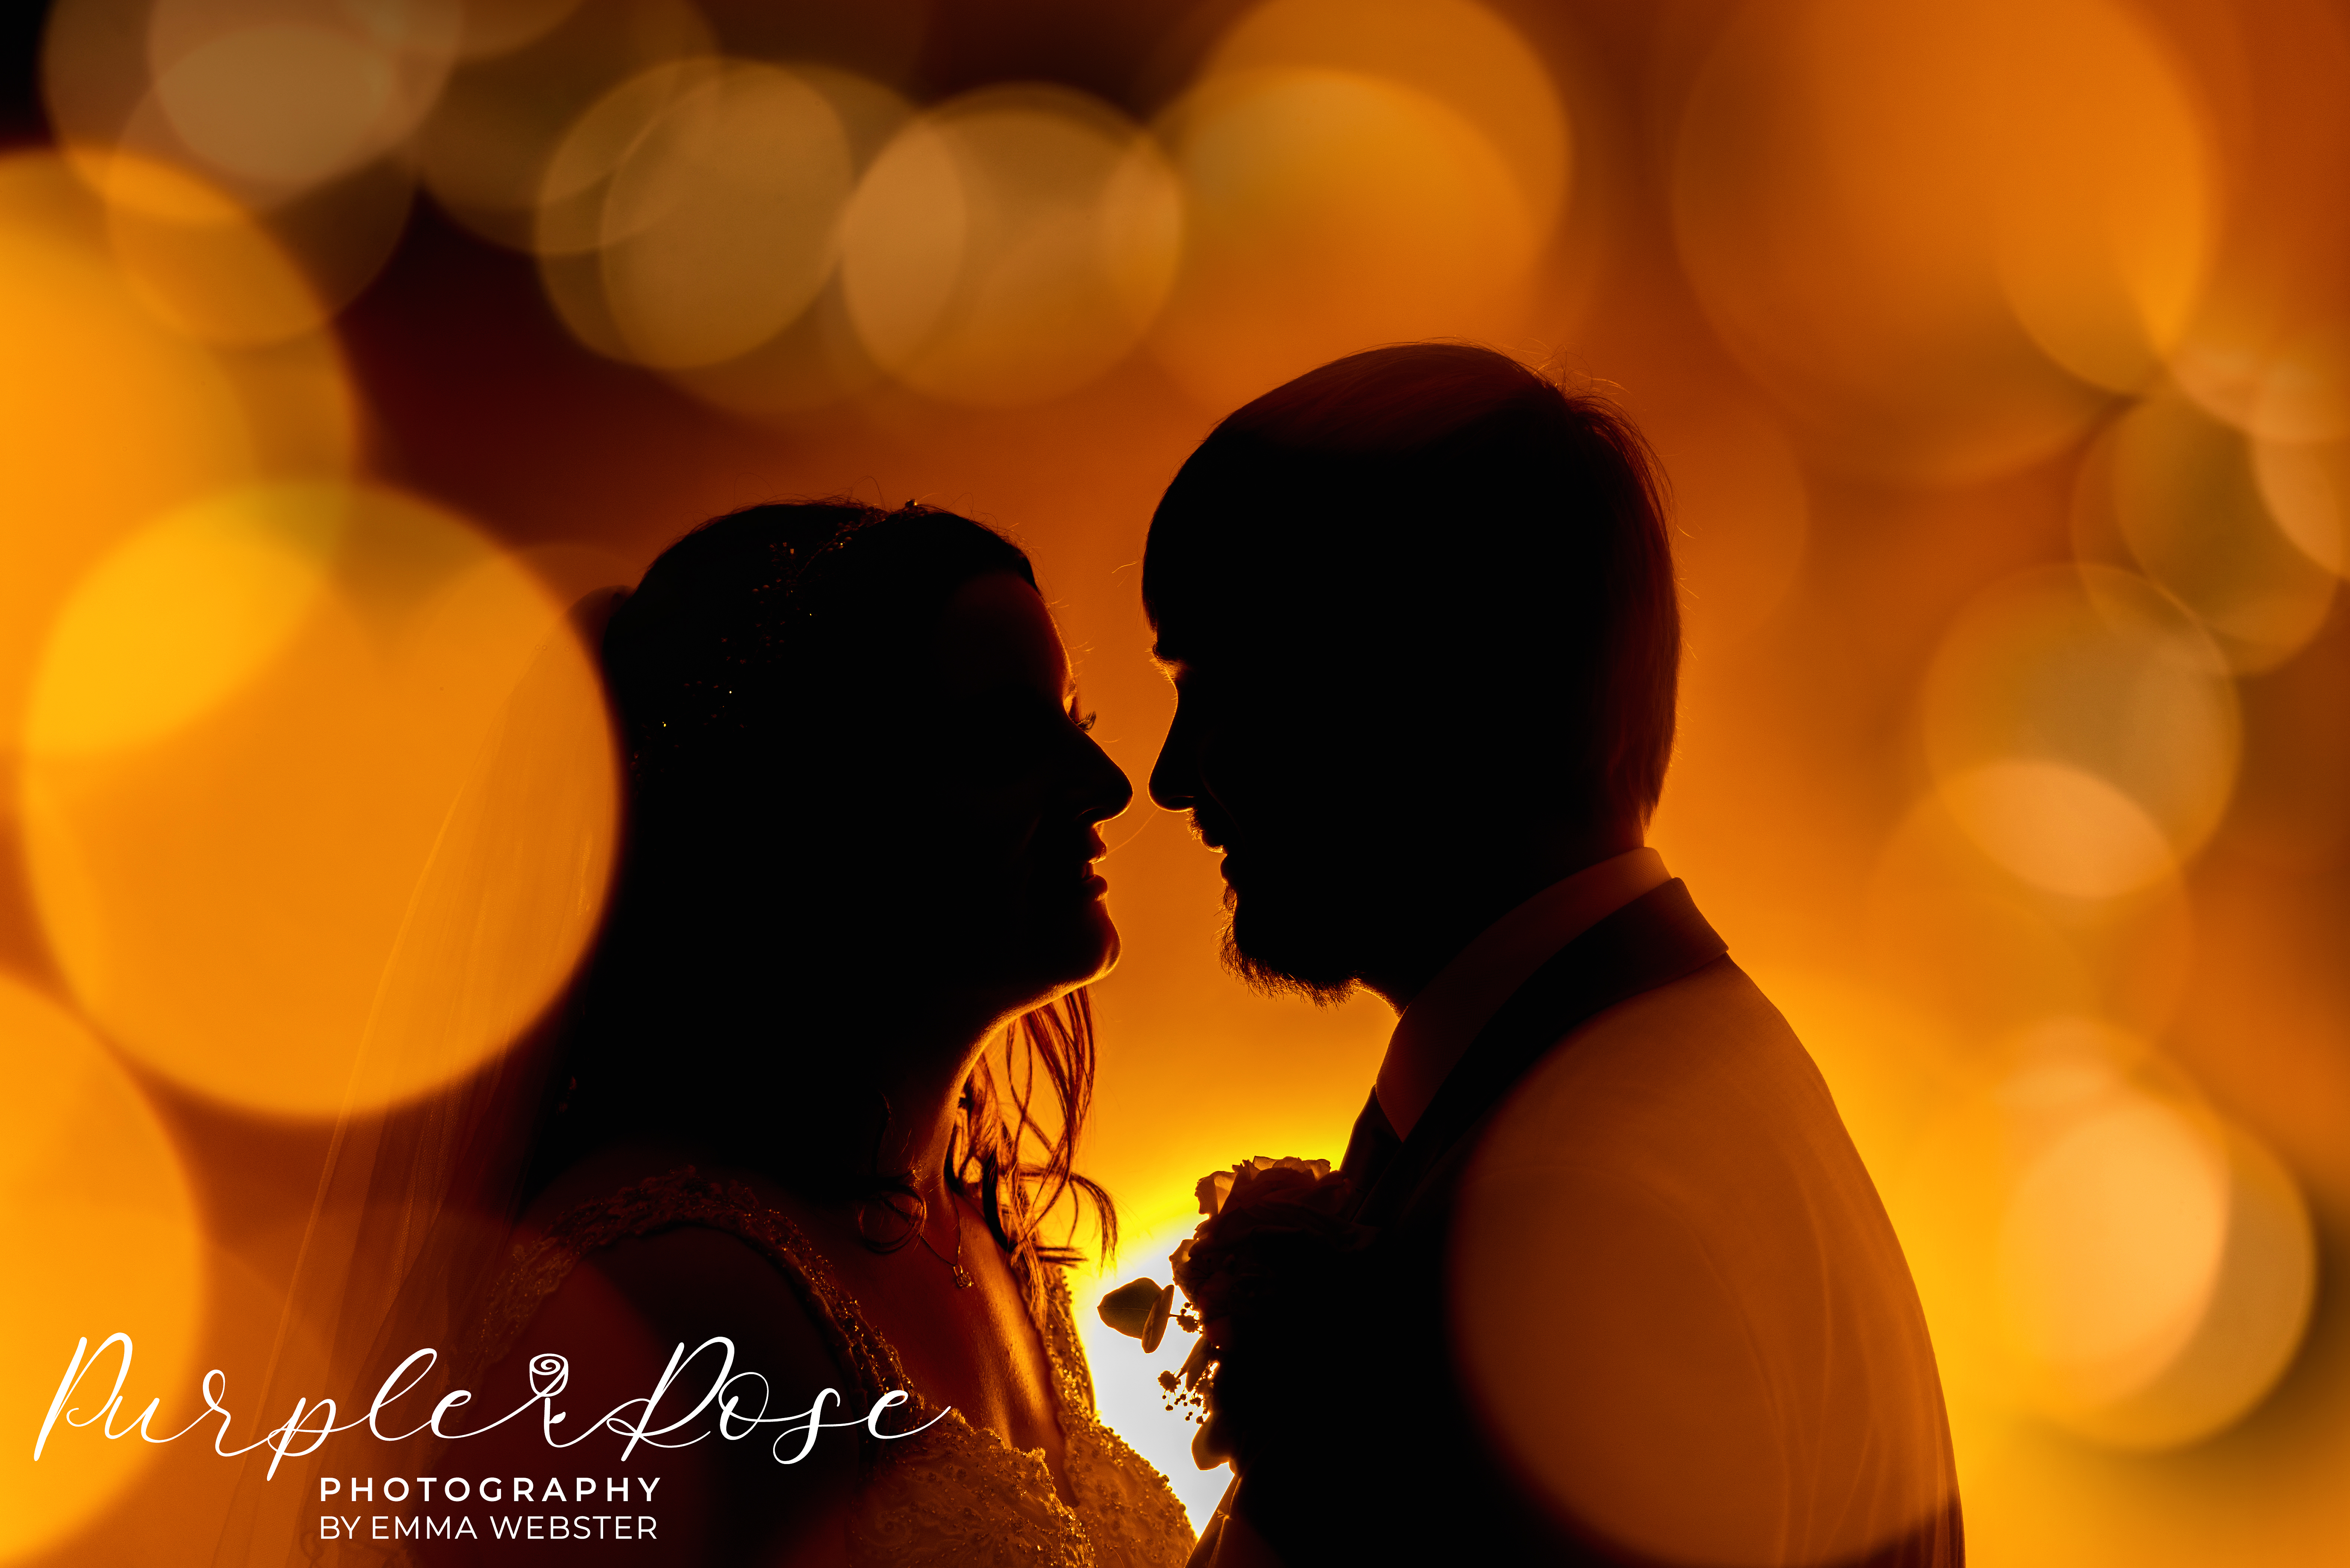 Siloueete of bride and groom surrounded by orange balls of light